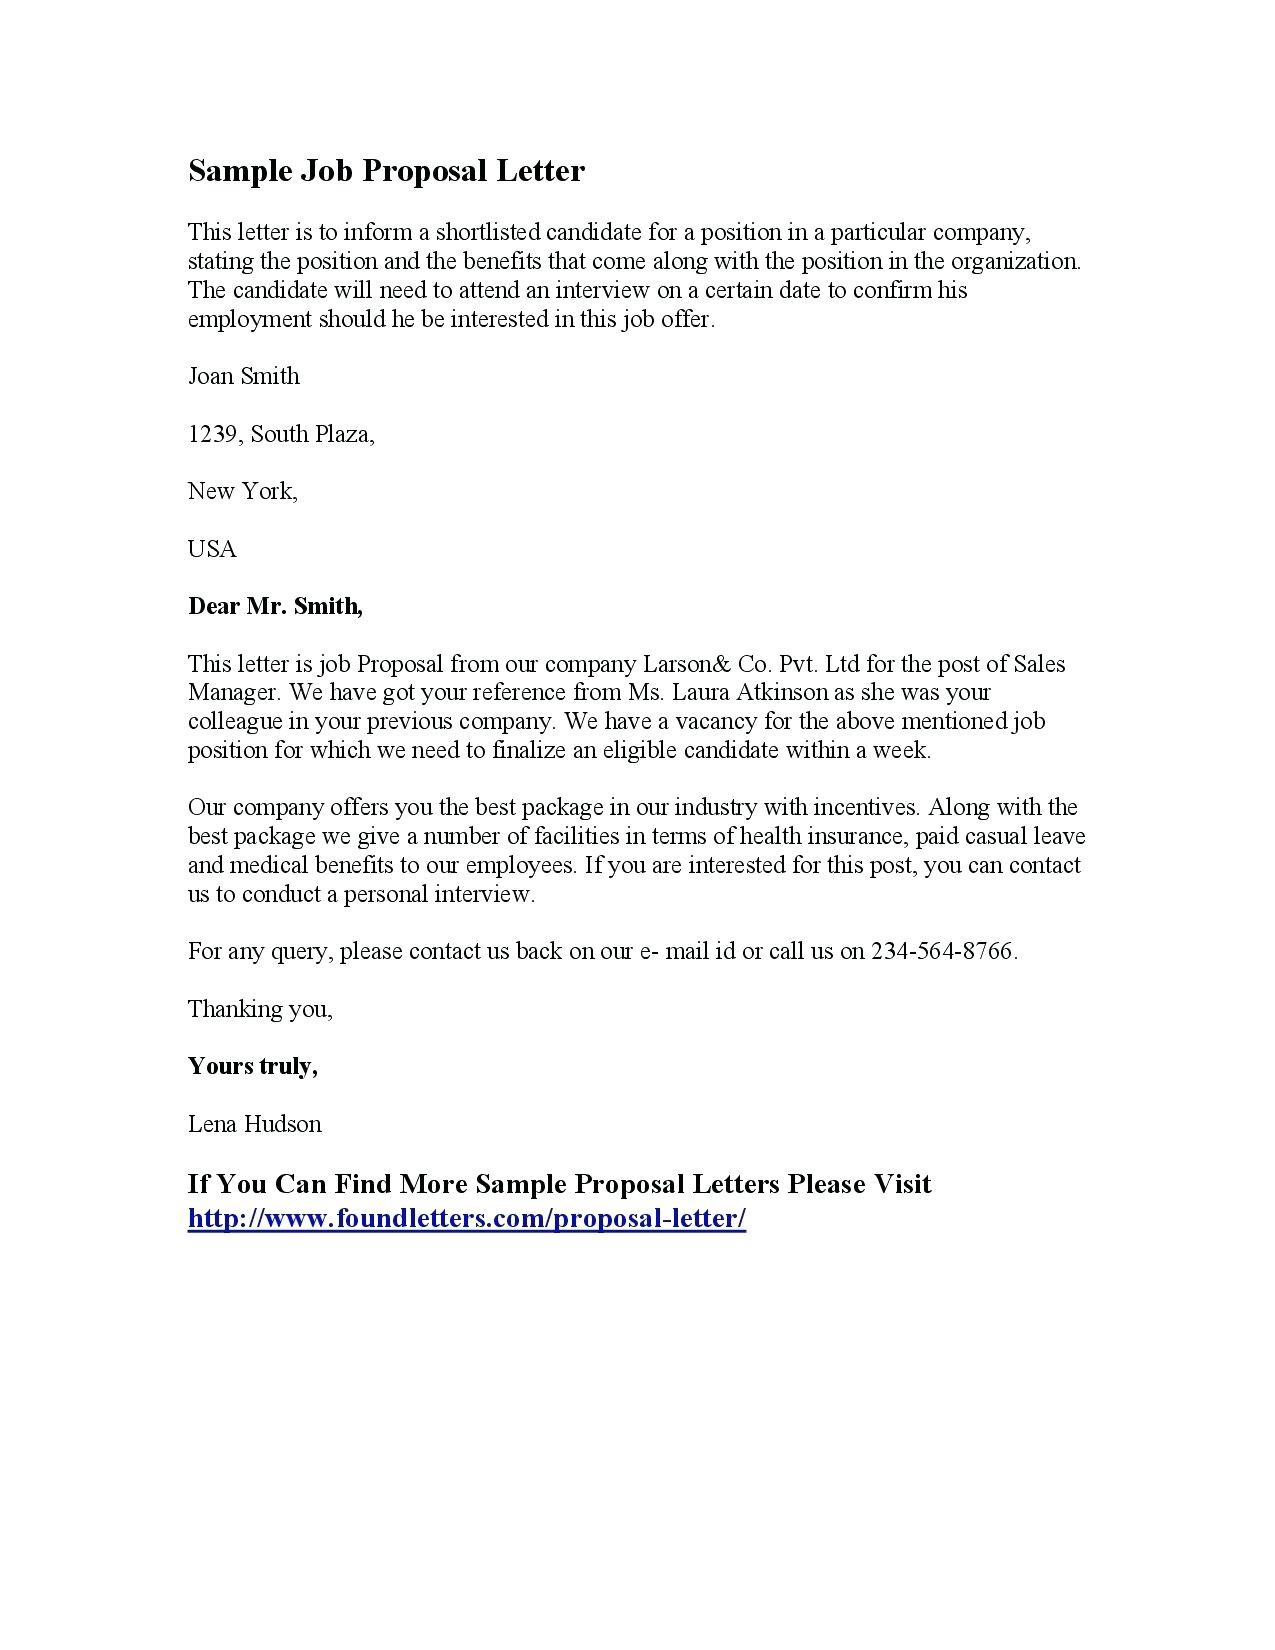 counter offer letter template example-Job fer Letter Template Us Copy Counter fer Letter Sample Template Design Salary Negotiation Fresh fer 1-p